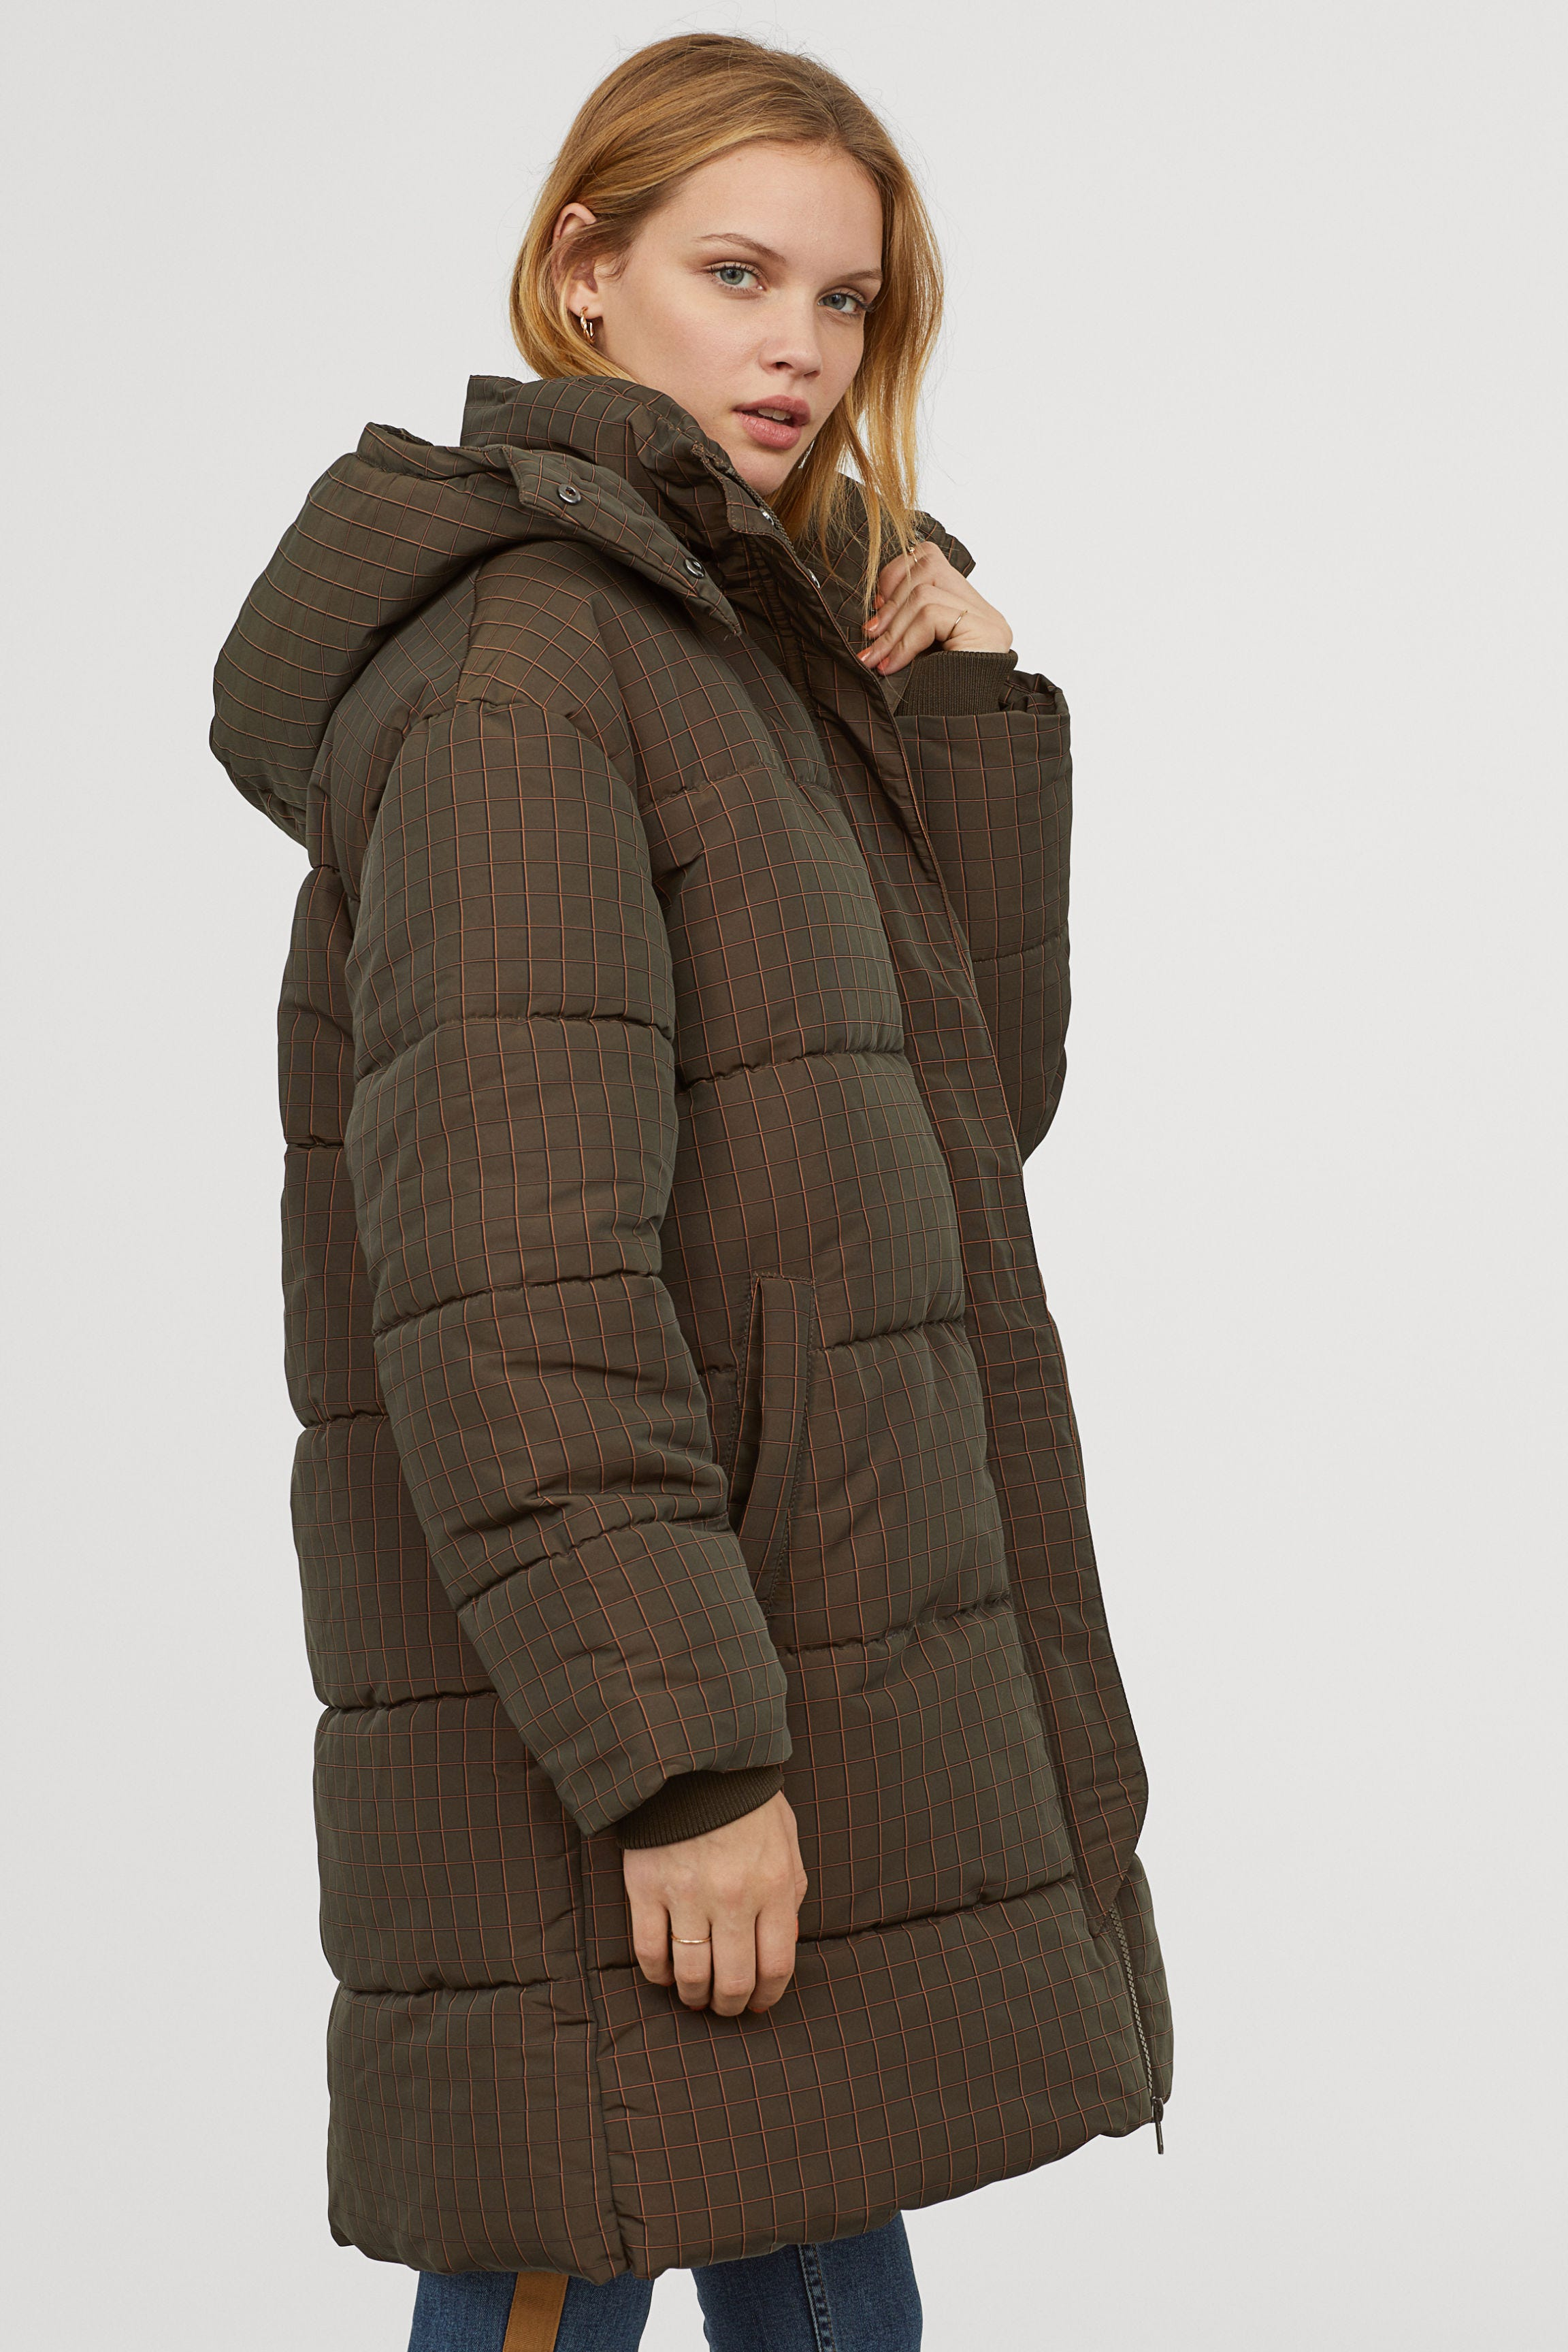 0f15e4fc903b Long Puffer Coats For Women To Look Cute And Stay Warm